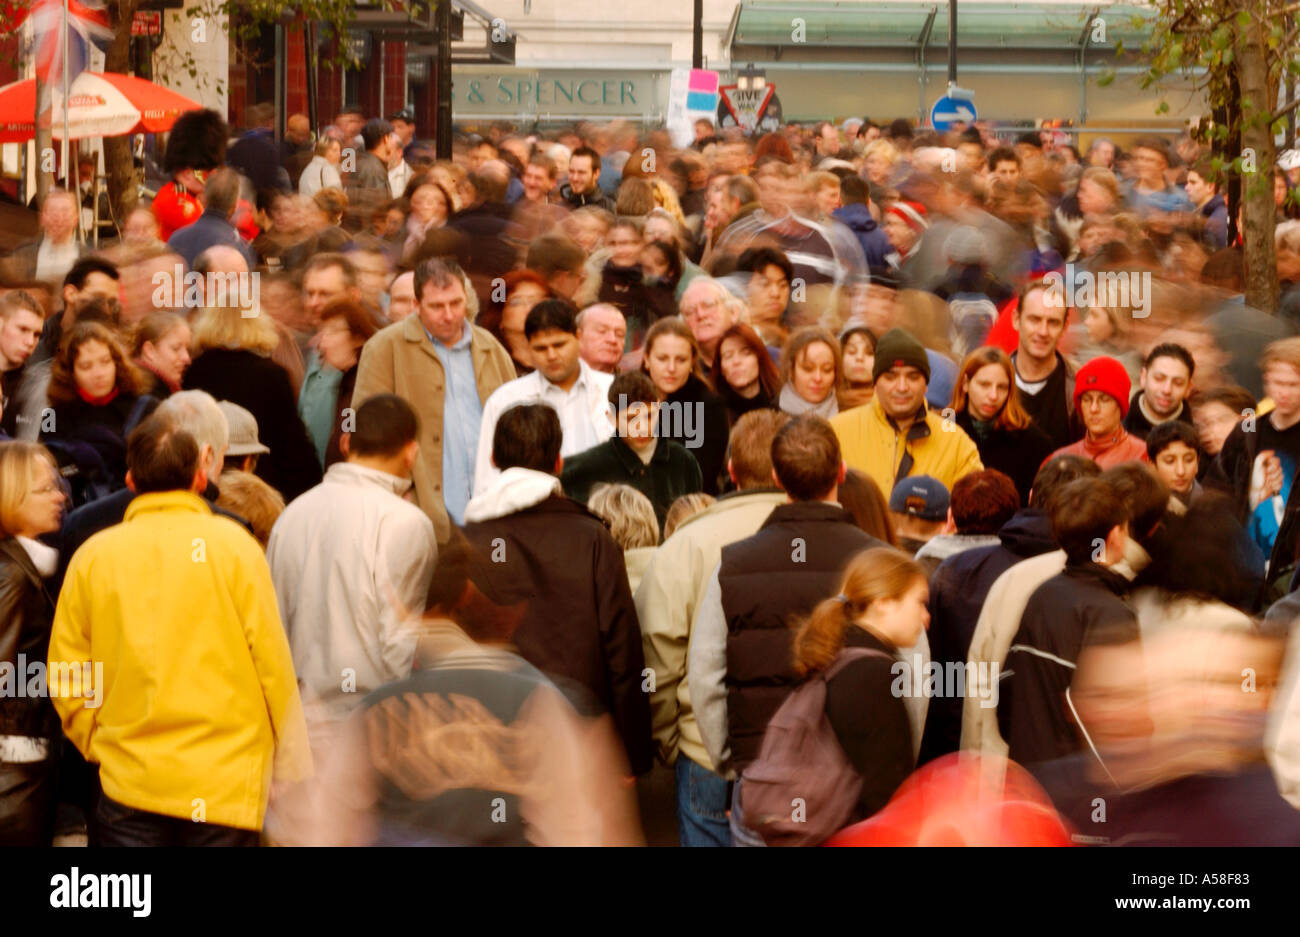 Crowd In Shopping Street - Stock Image